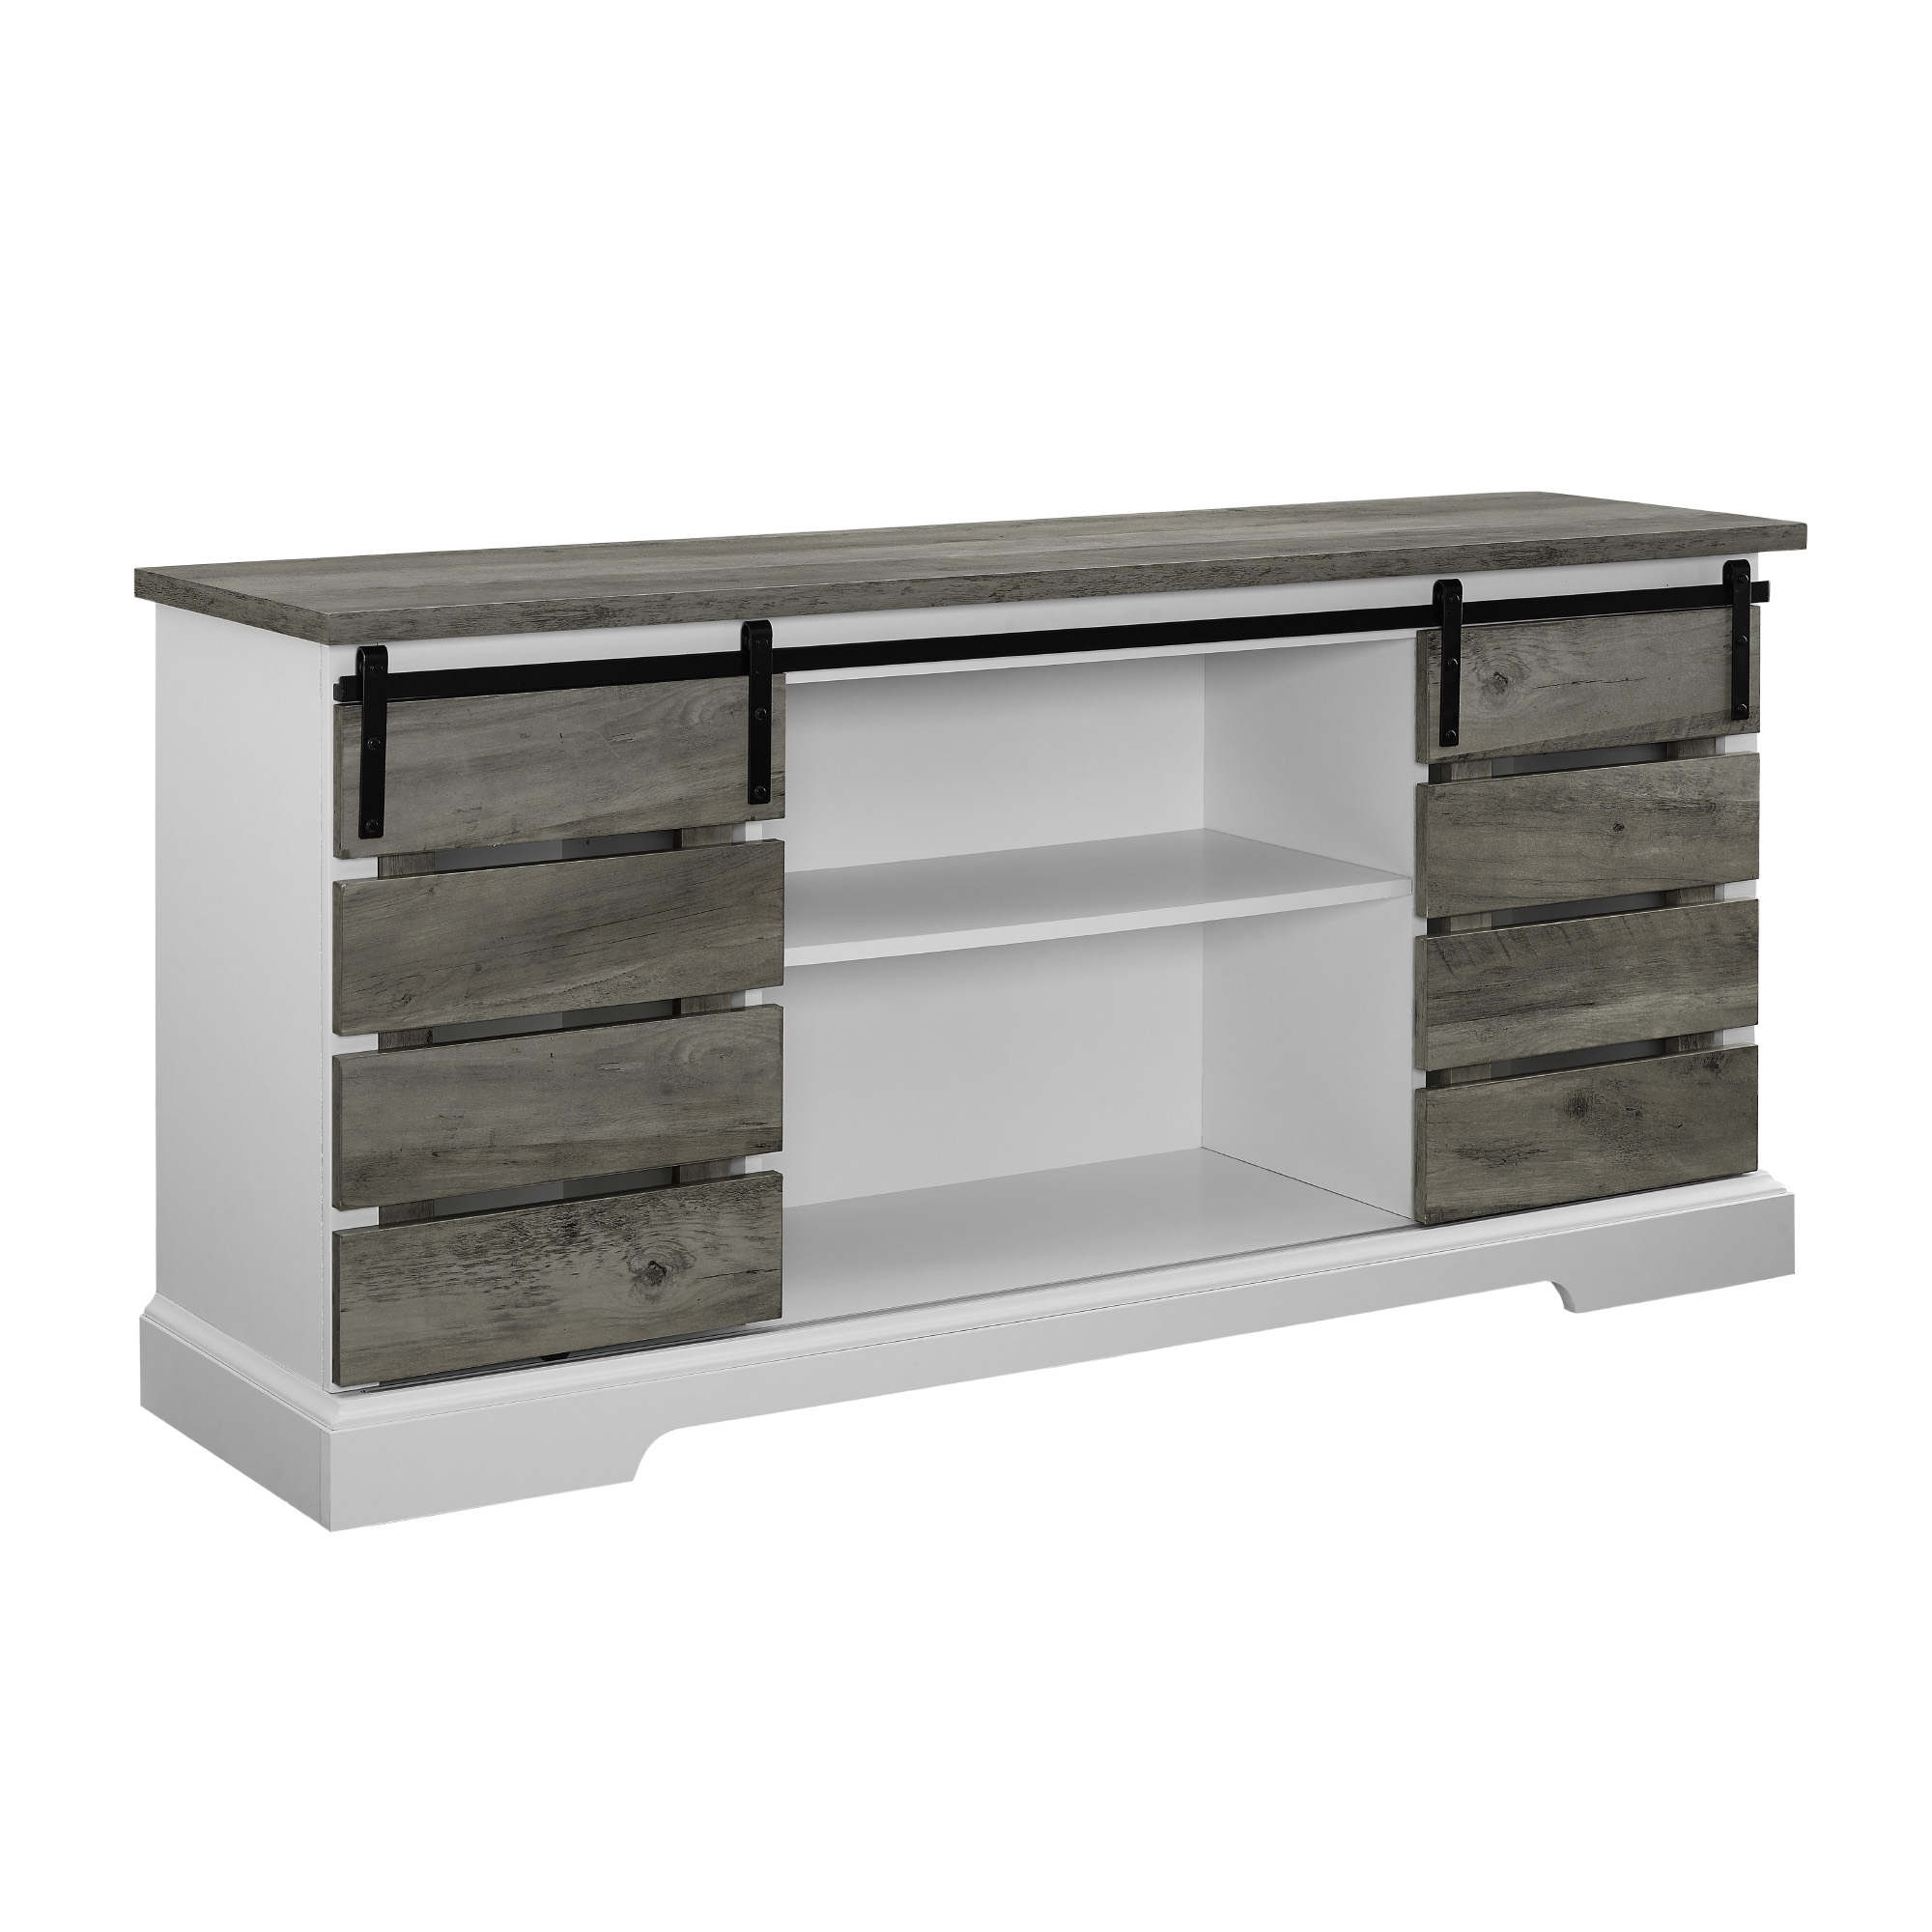 Woven Paths Sliding Slat Door Tv Stand For Tv's Up To 64 Throughout Woven Paths Farmhouse Sliding Barn Door Tv Stands With Multiple Finishes (View 1 of 14)